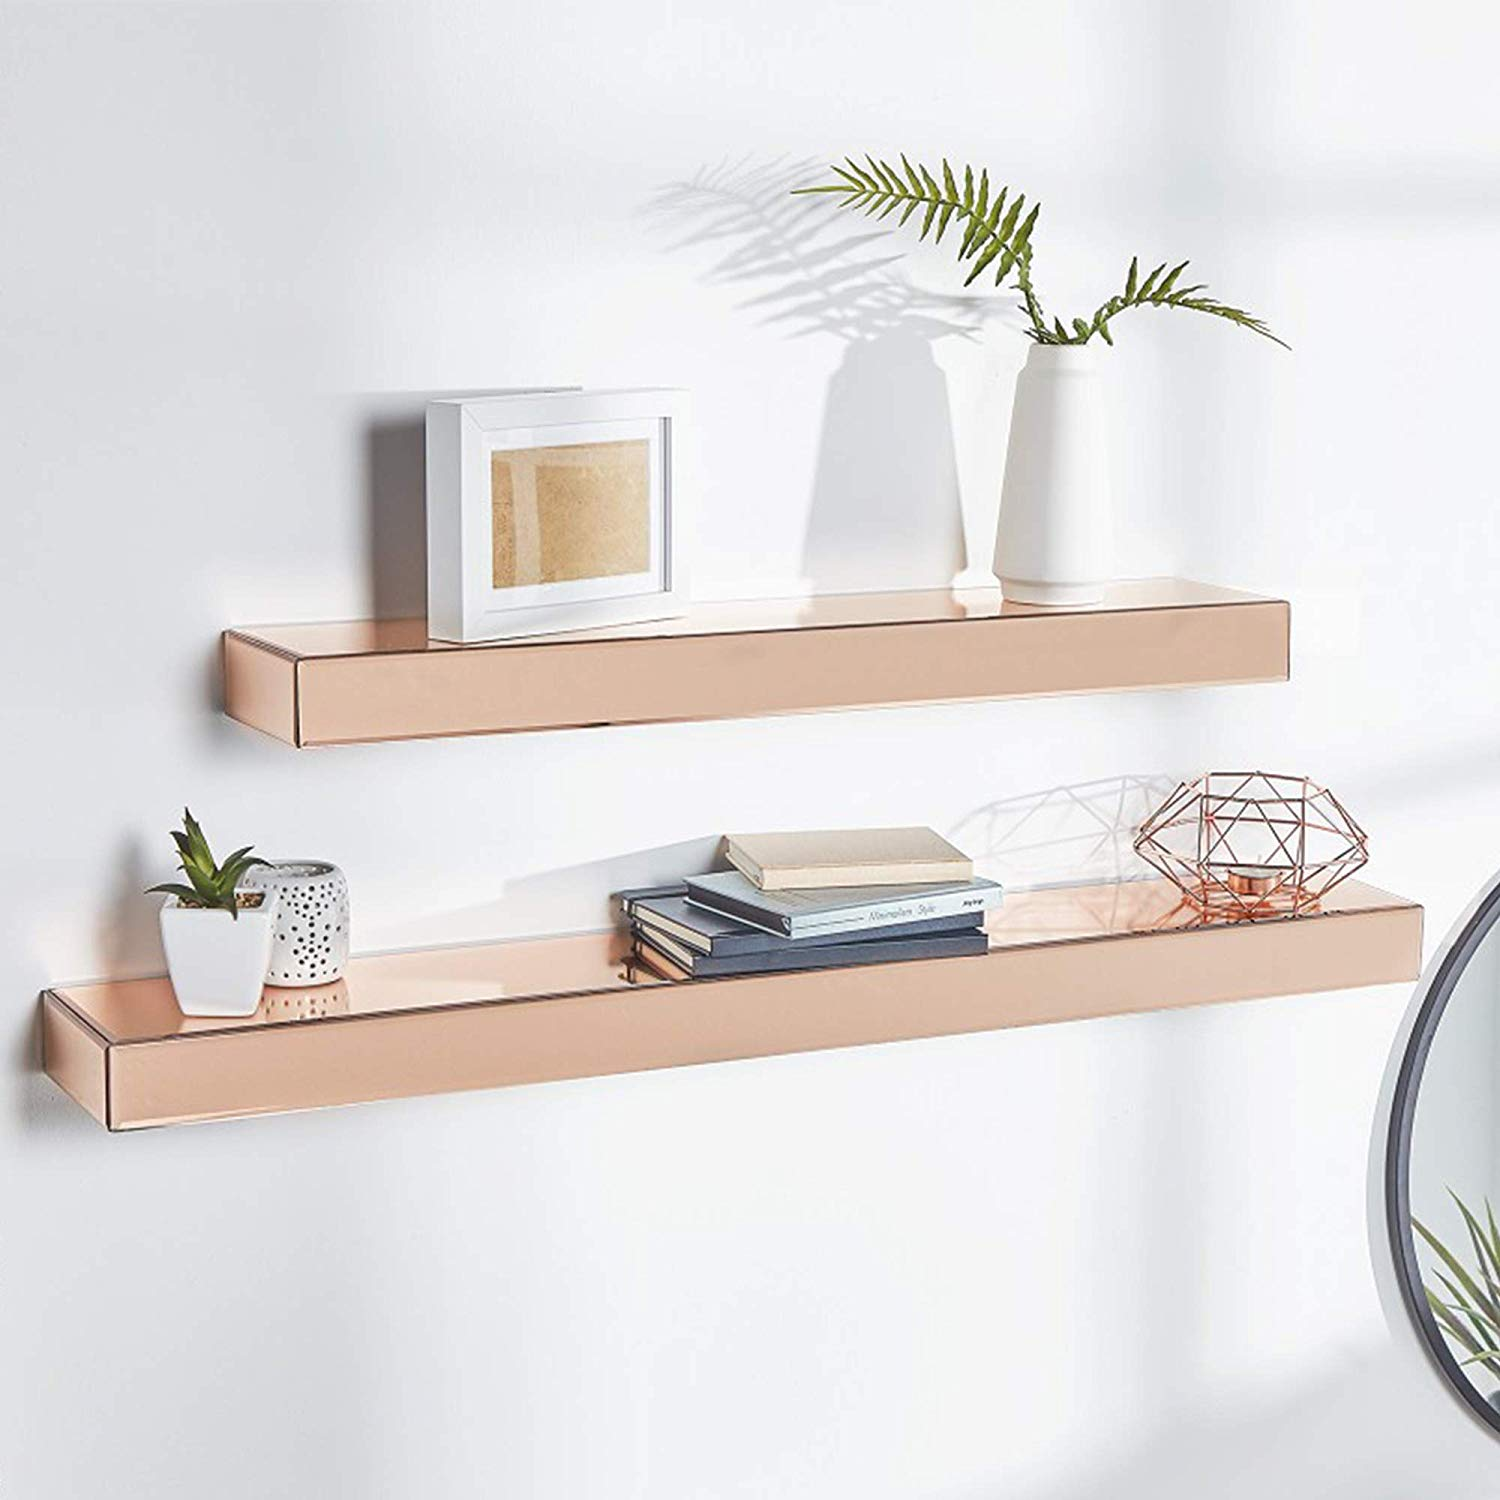 beautify set rose gold mirrored glass shelves floating wall shelf display ledges storage for bedroom living and hallway hardware entryway bench free organizing with command hooks